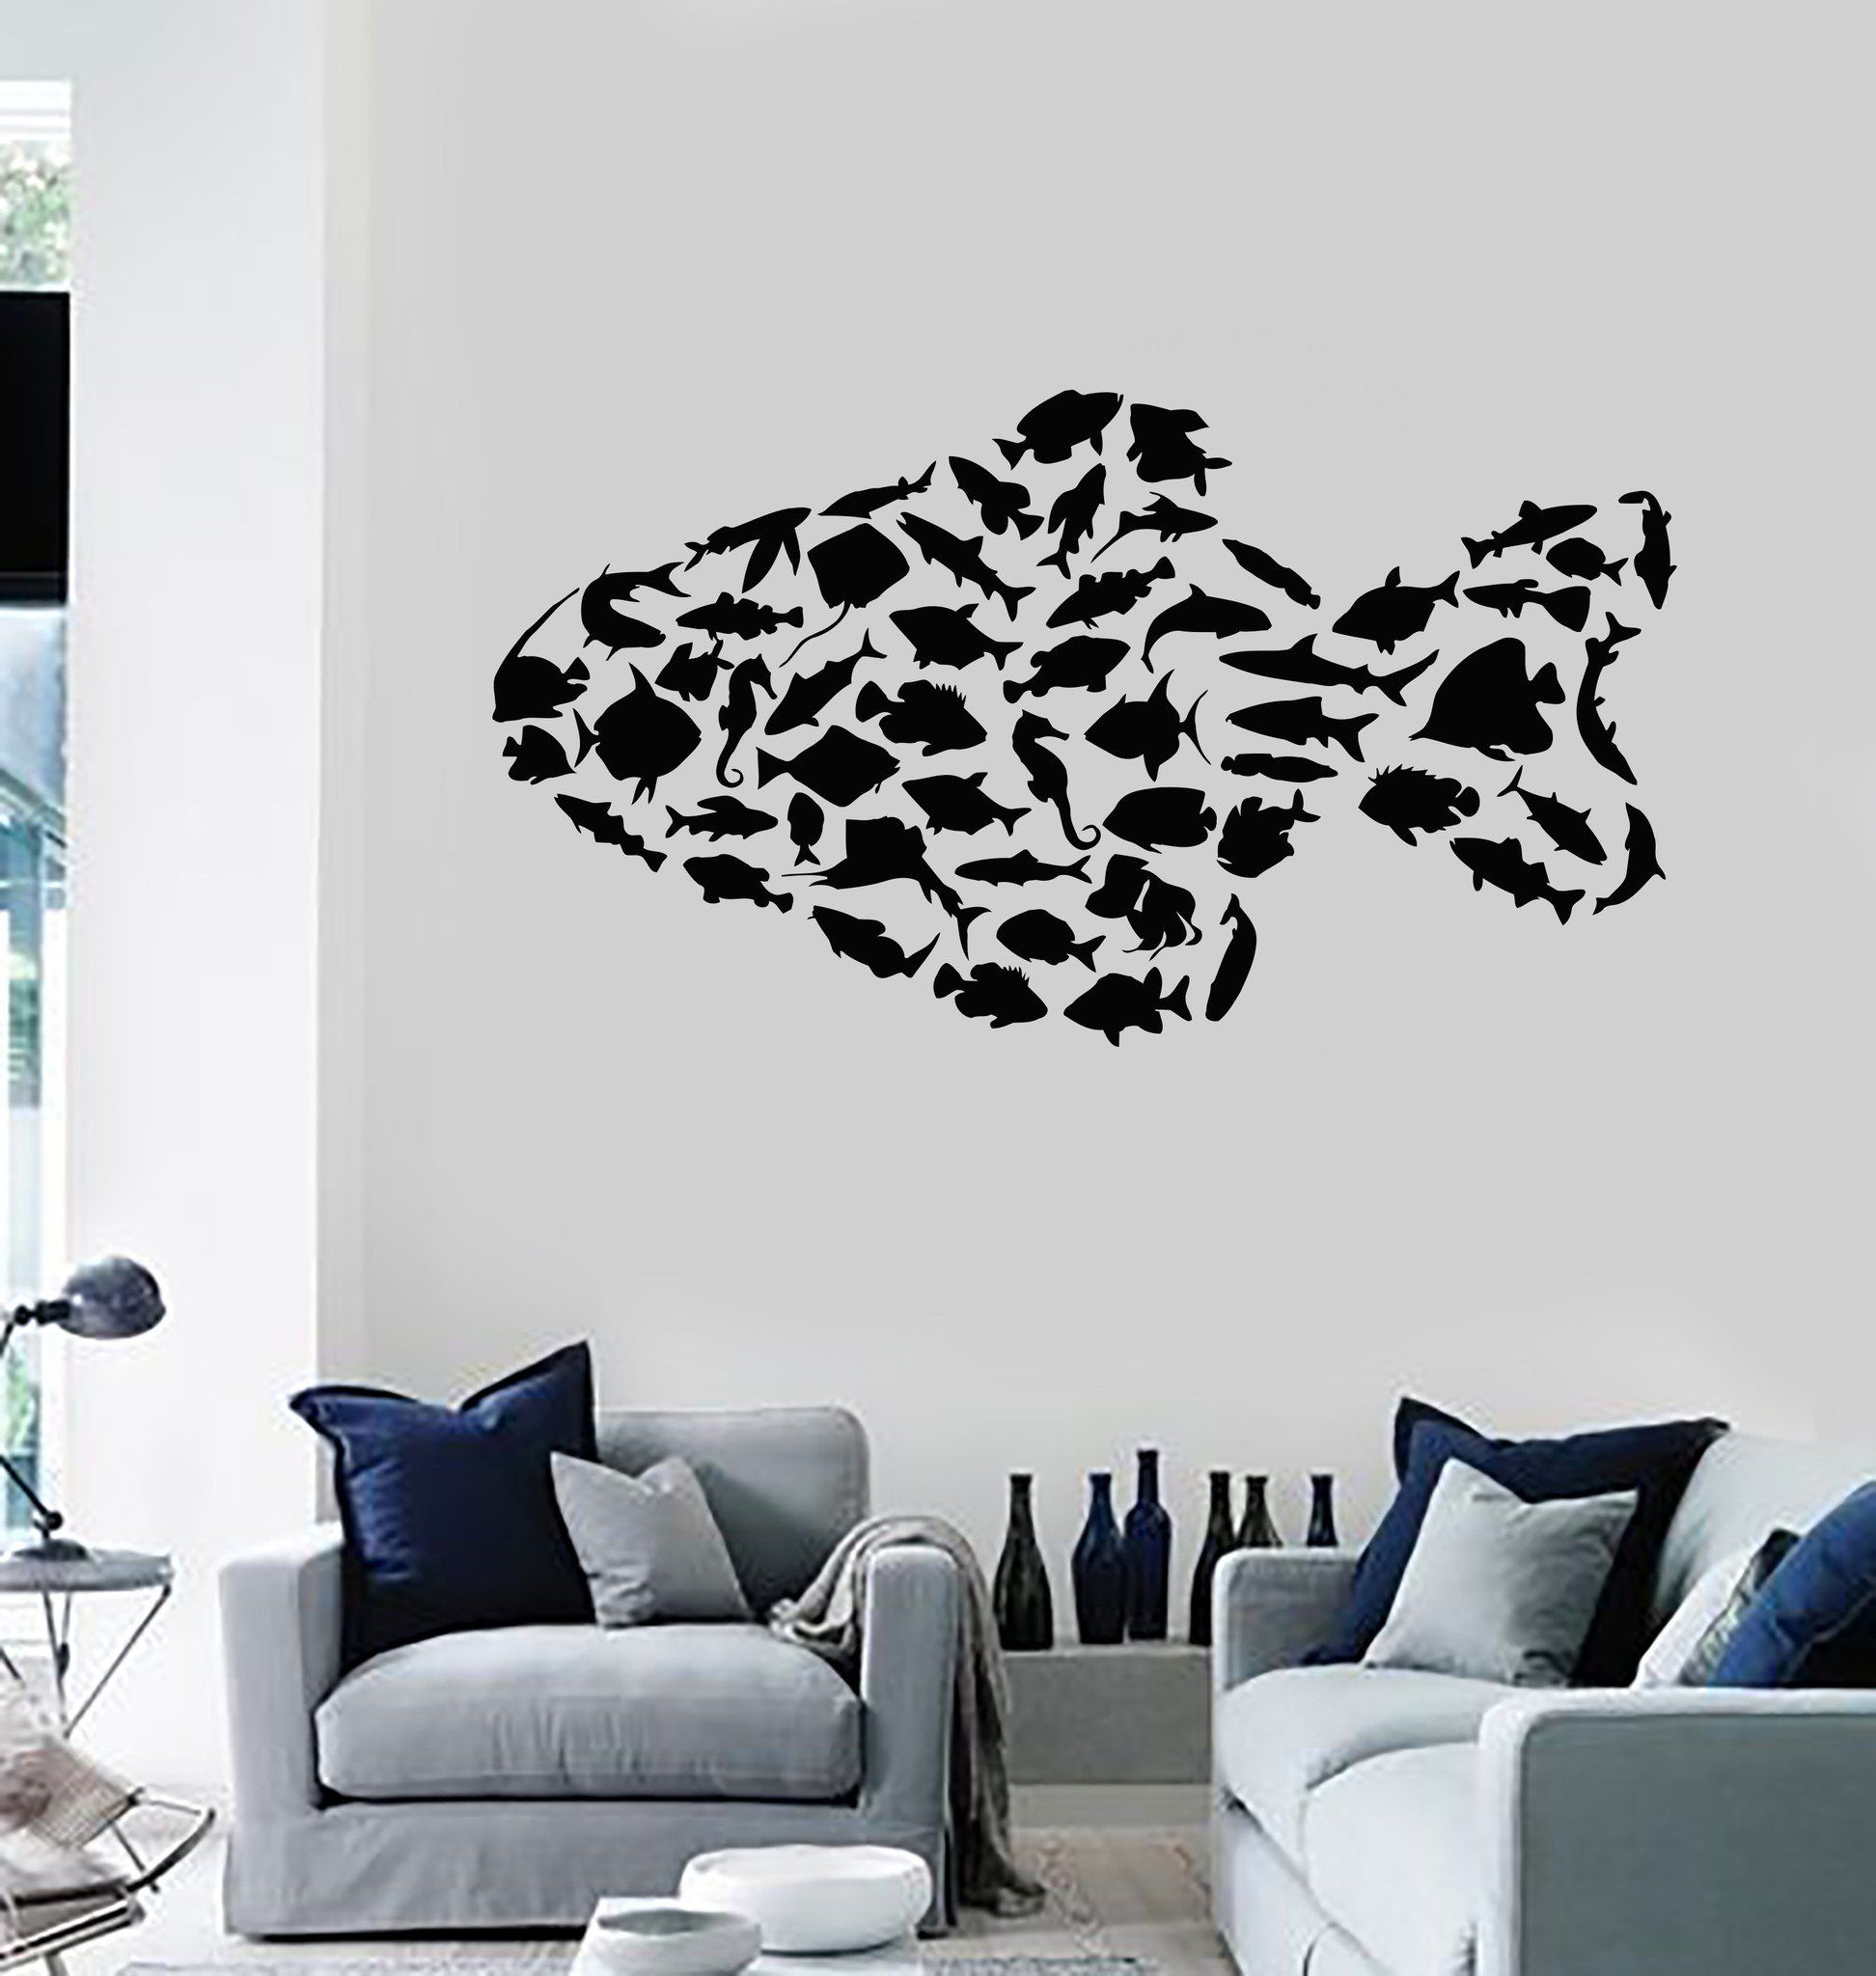 Vinyl Wall Decal Marine Animals Fish Ocean Sea Bathroom Stickers ...